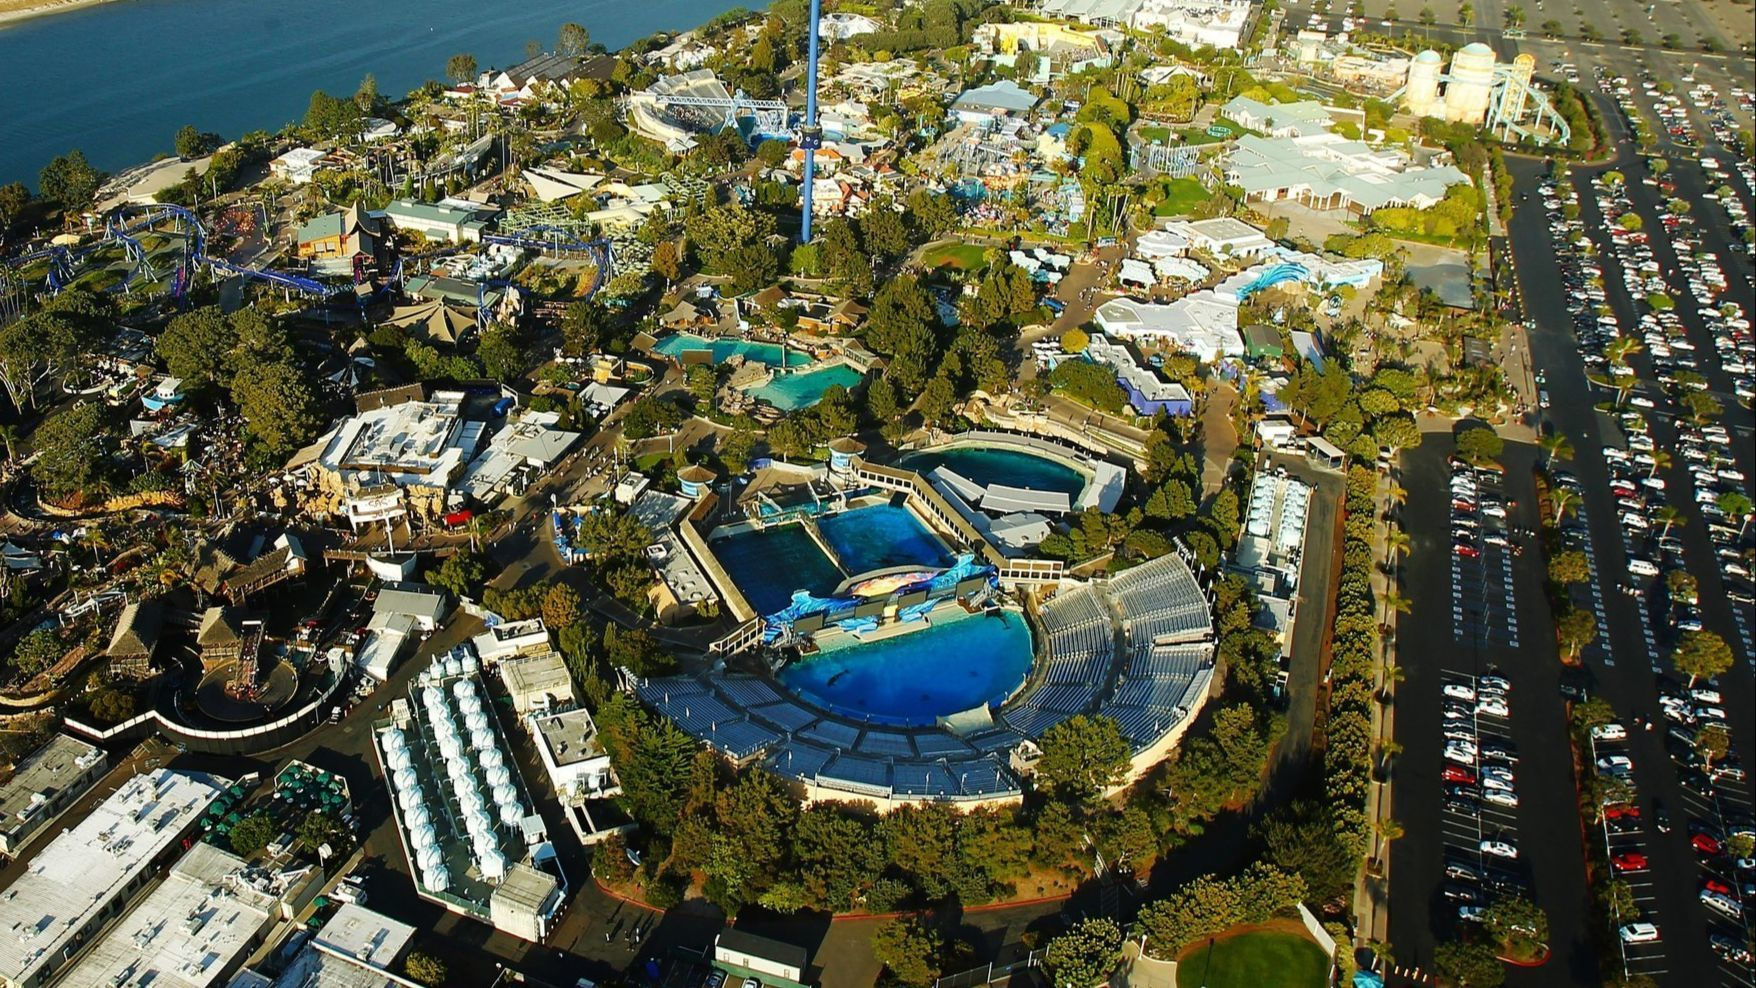 SeaWorld backs out of deal for hotel at San Diego park